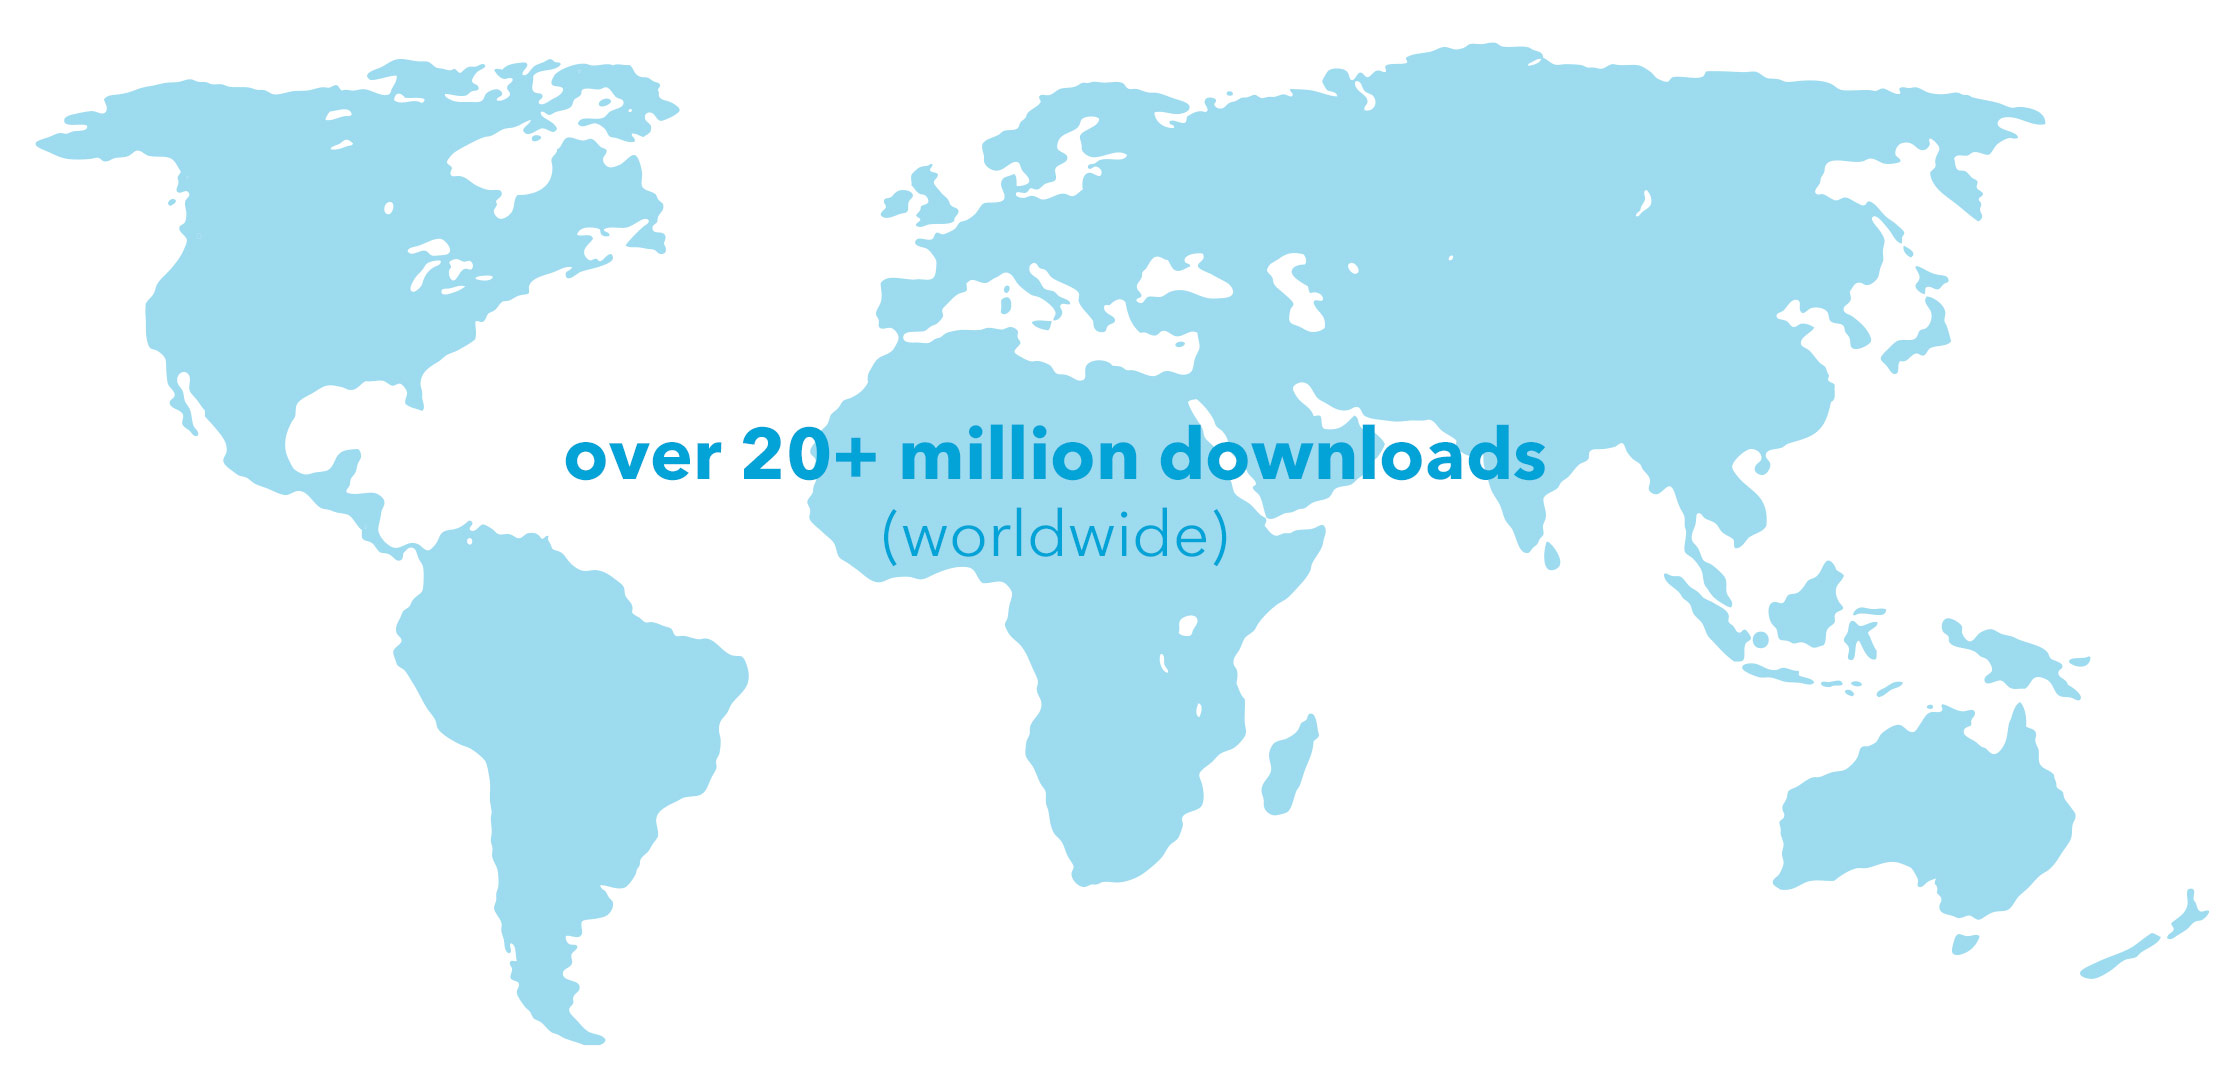 Downloads across the world